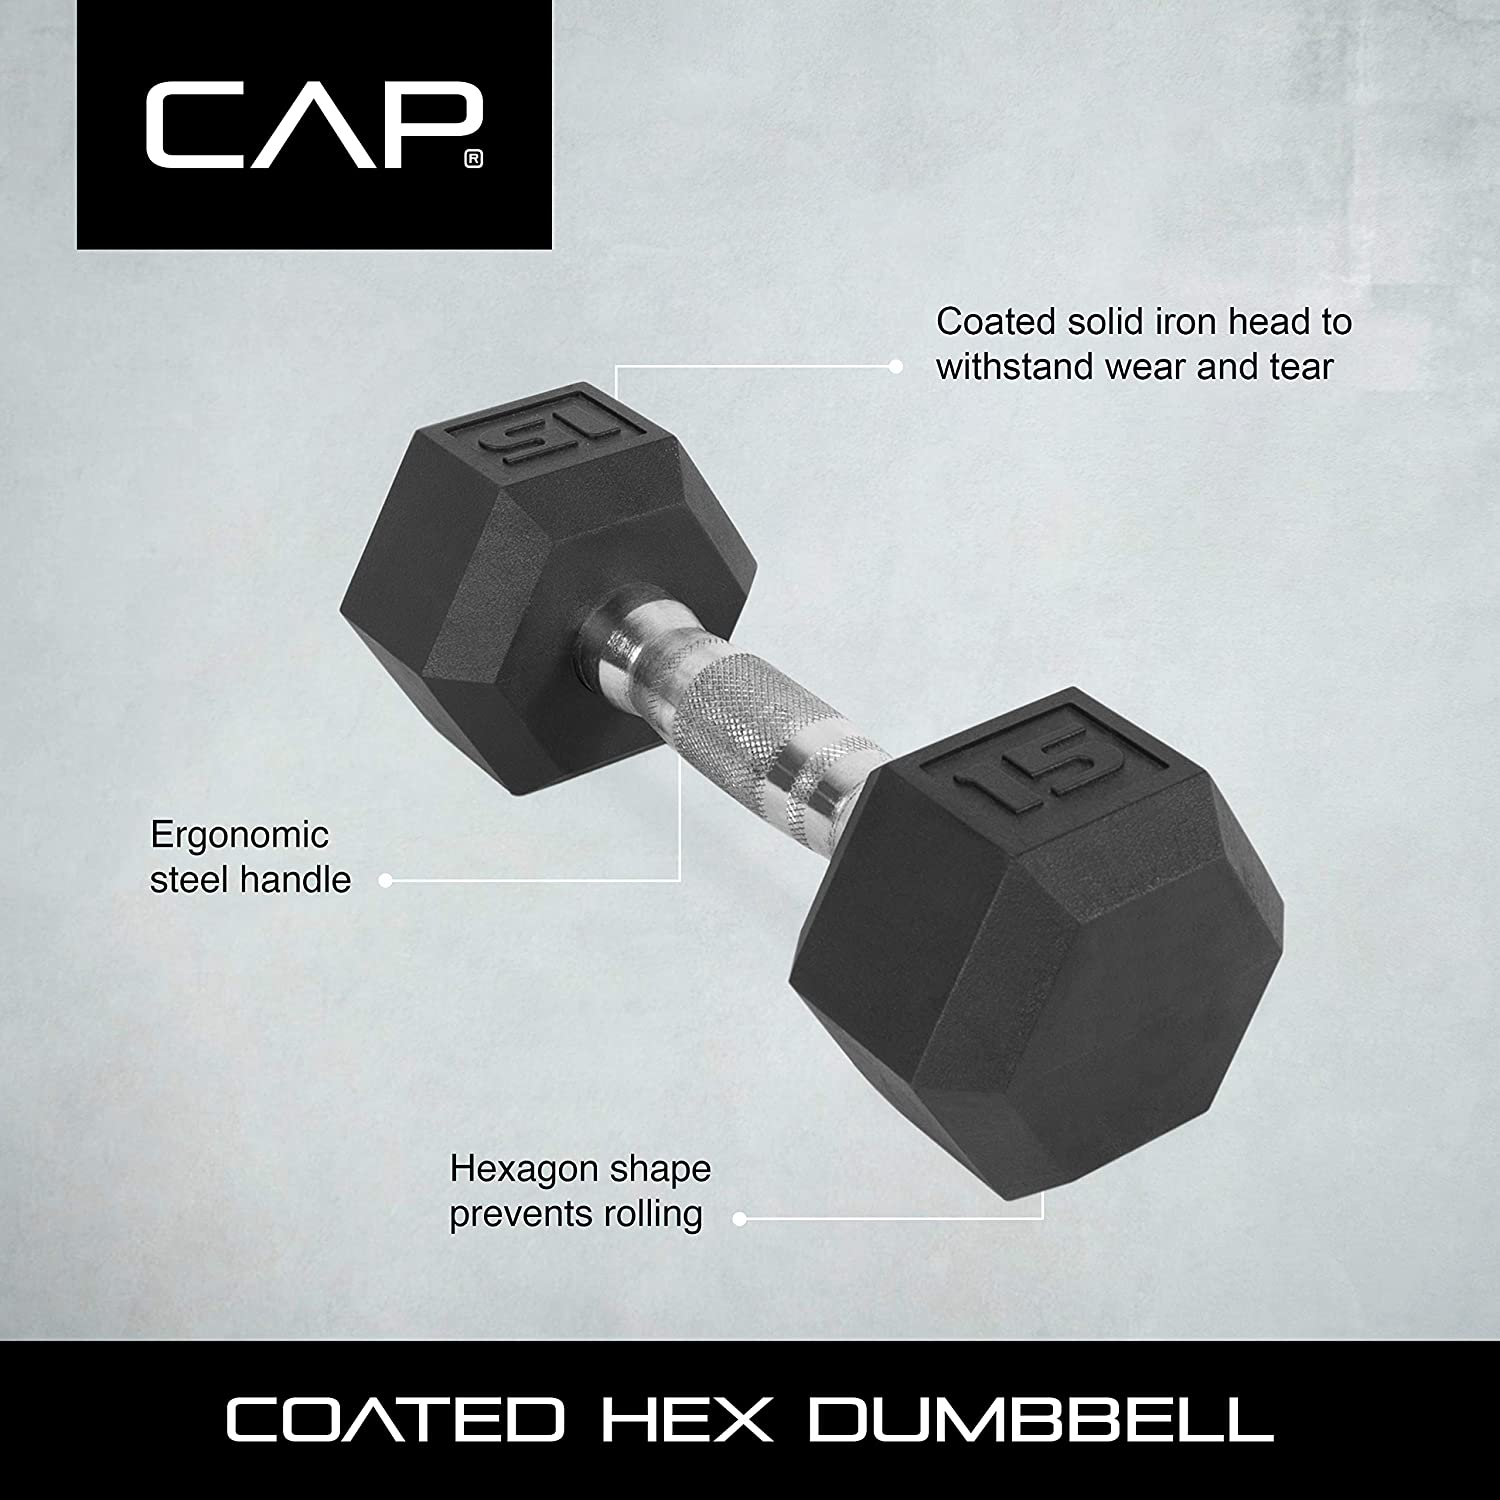 PAIR OF RUBBER COATED HEX DUMBBELLS WEIGHTS